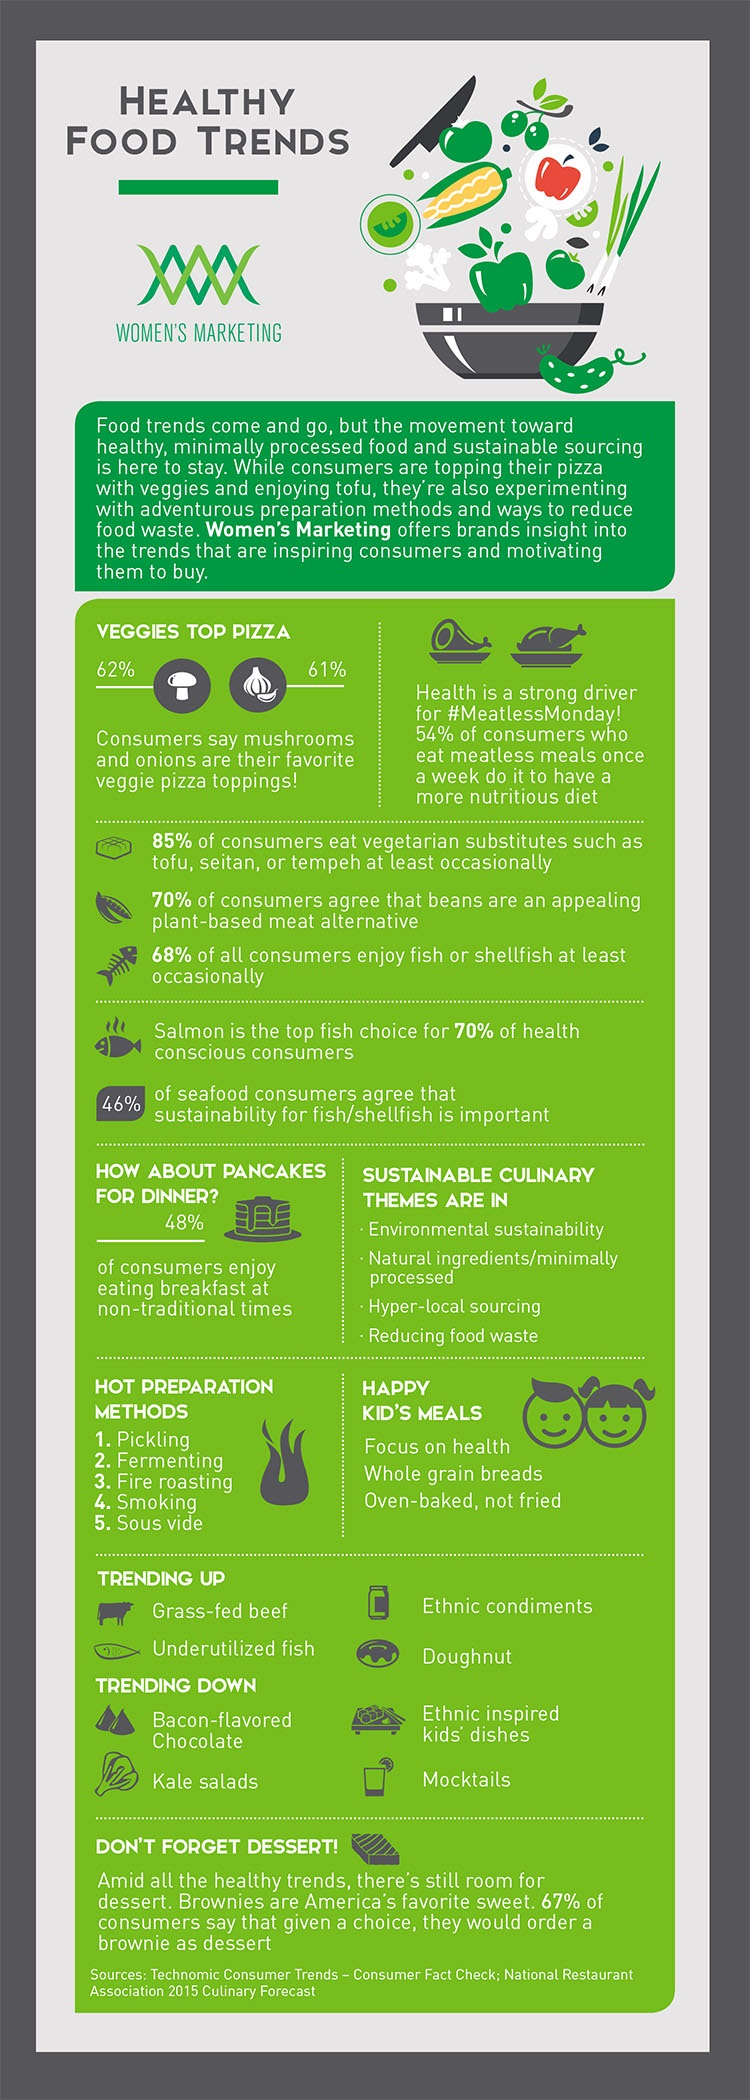 HealthyFoodTrends_Infographic